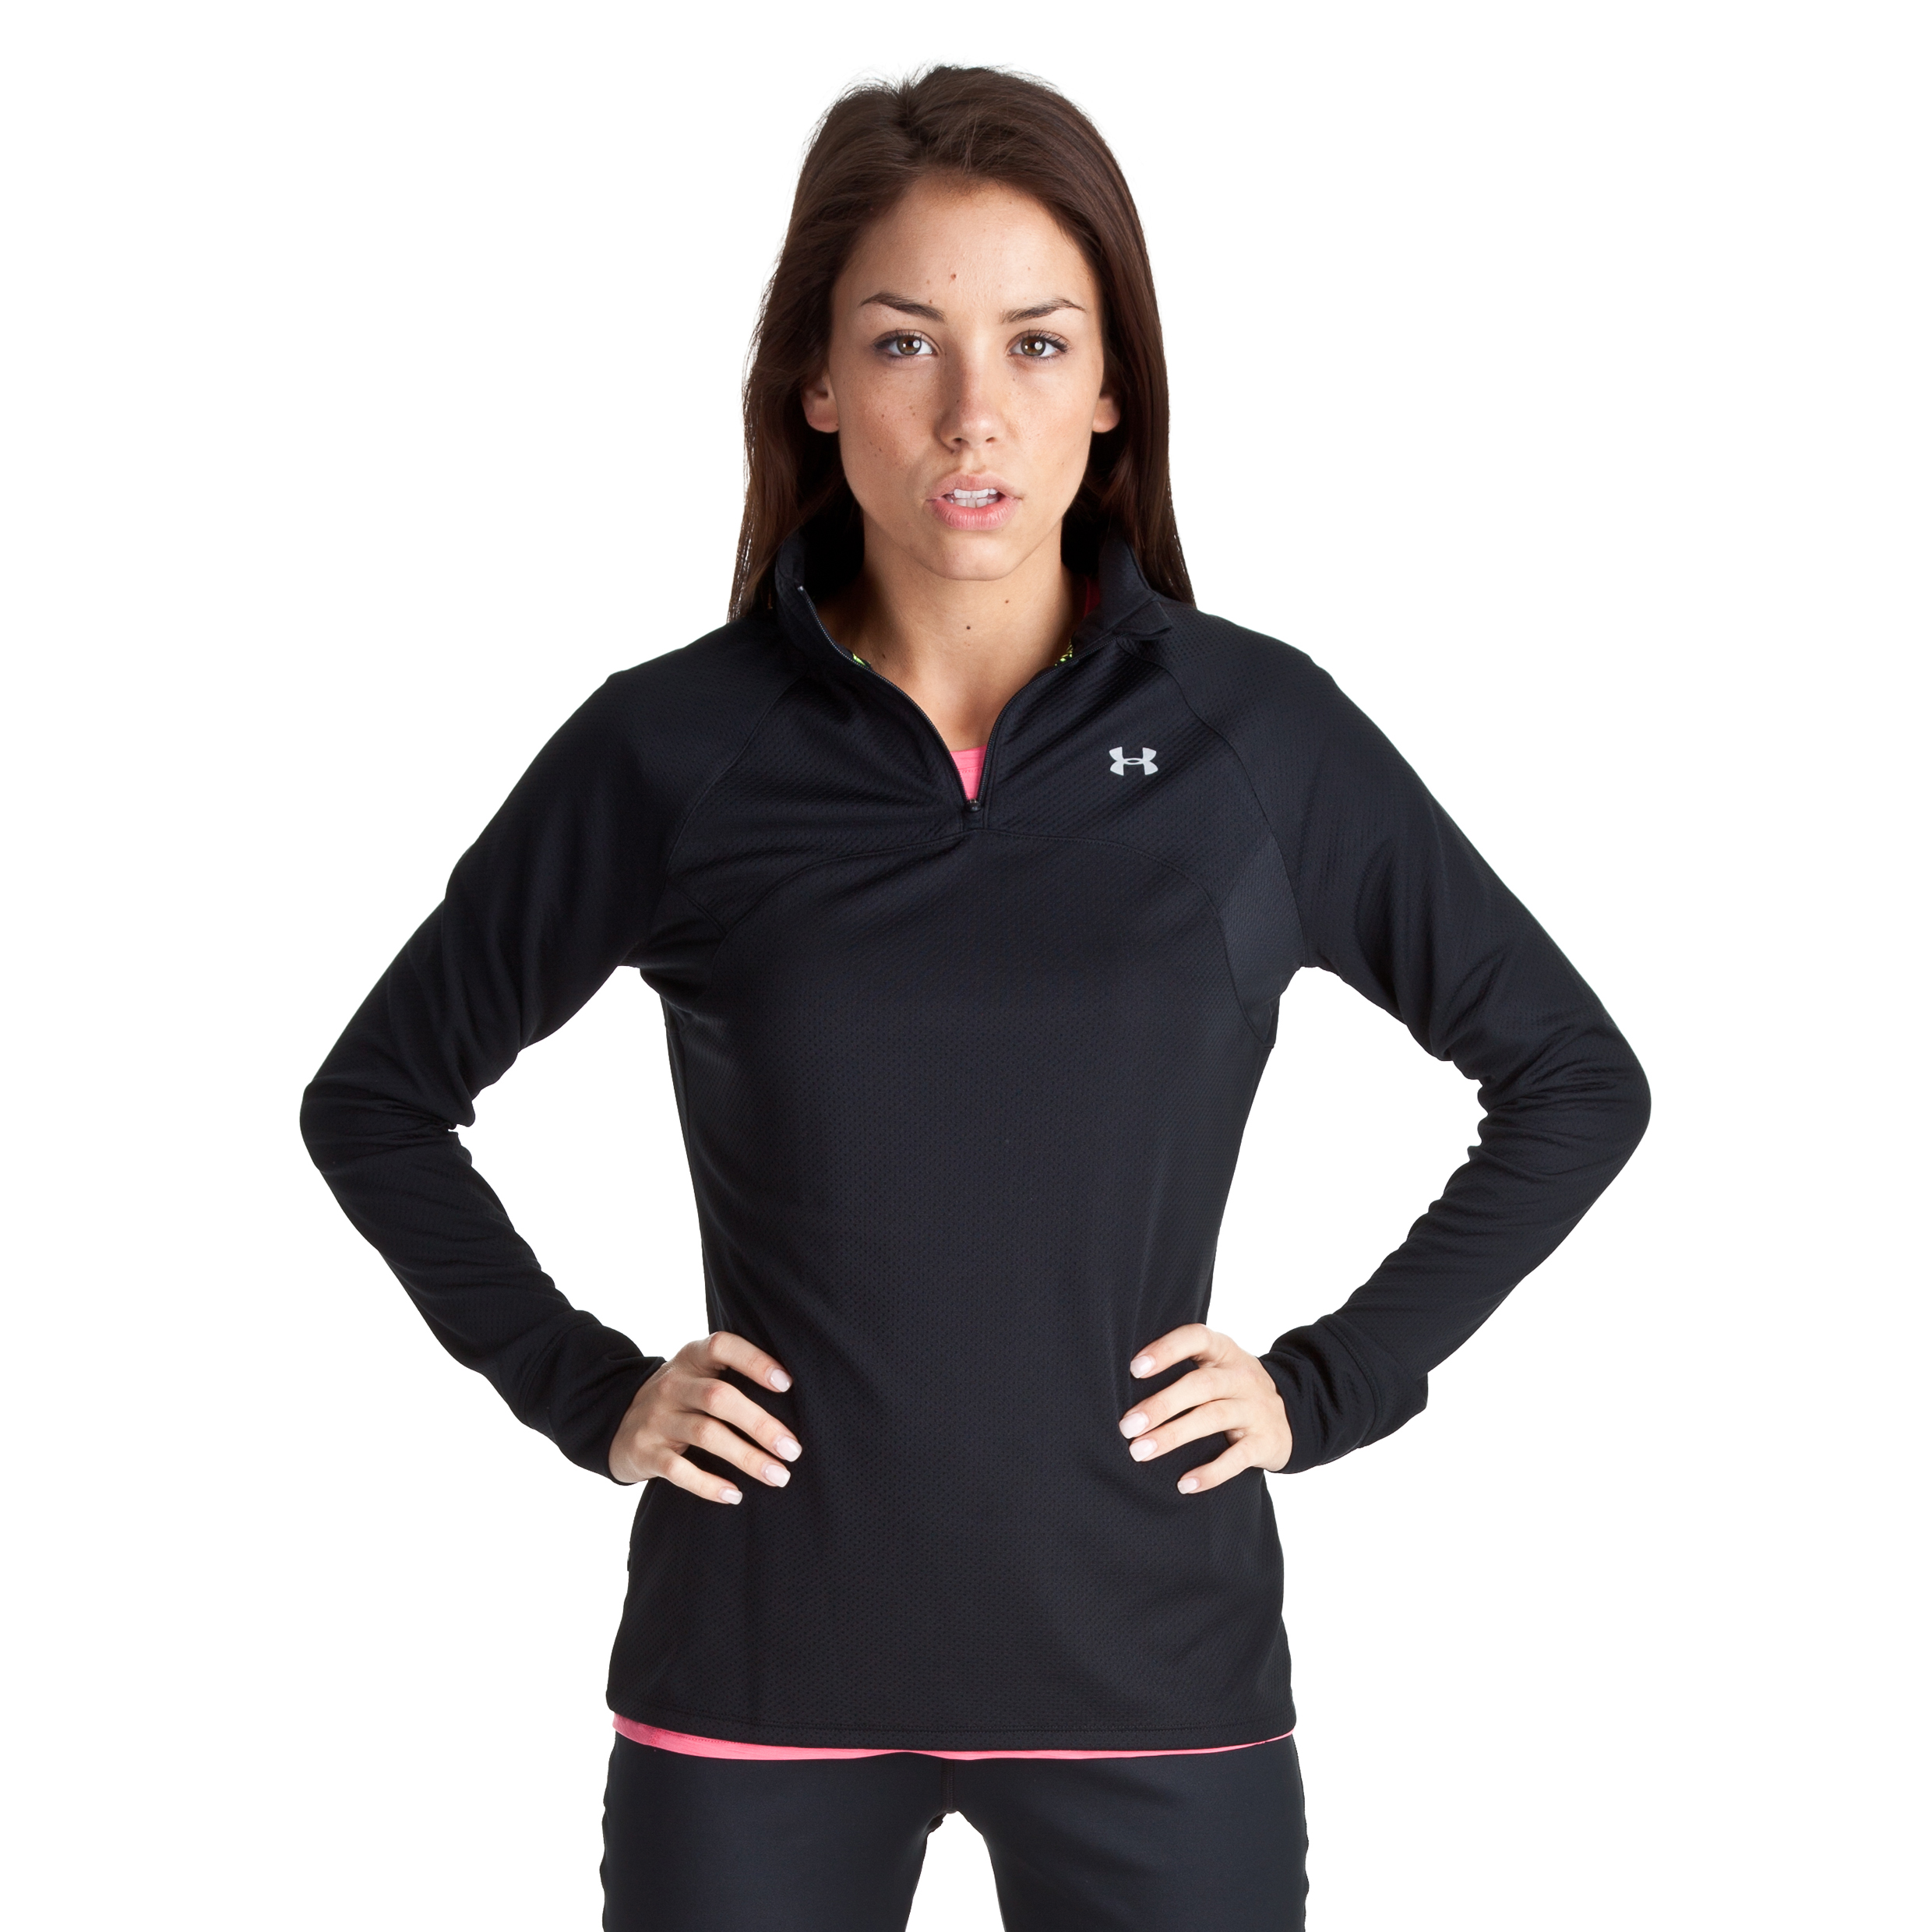 Under Armour Escape Lightweight 1/4 Zip Top II - Black - Womens